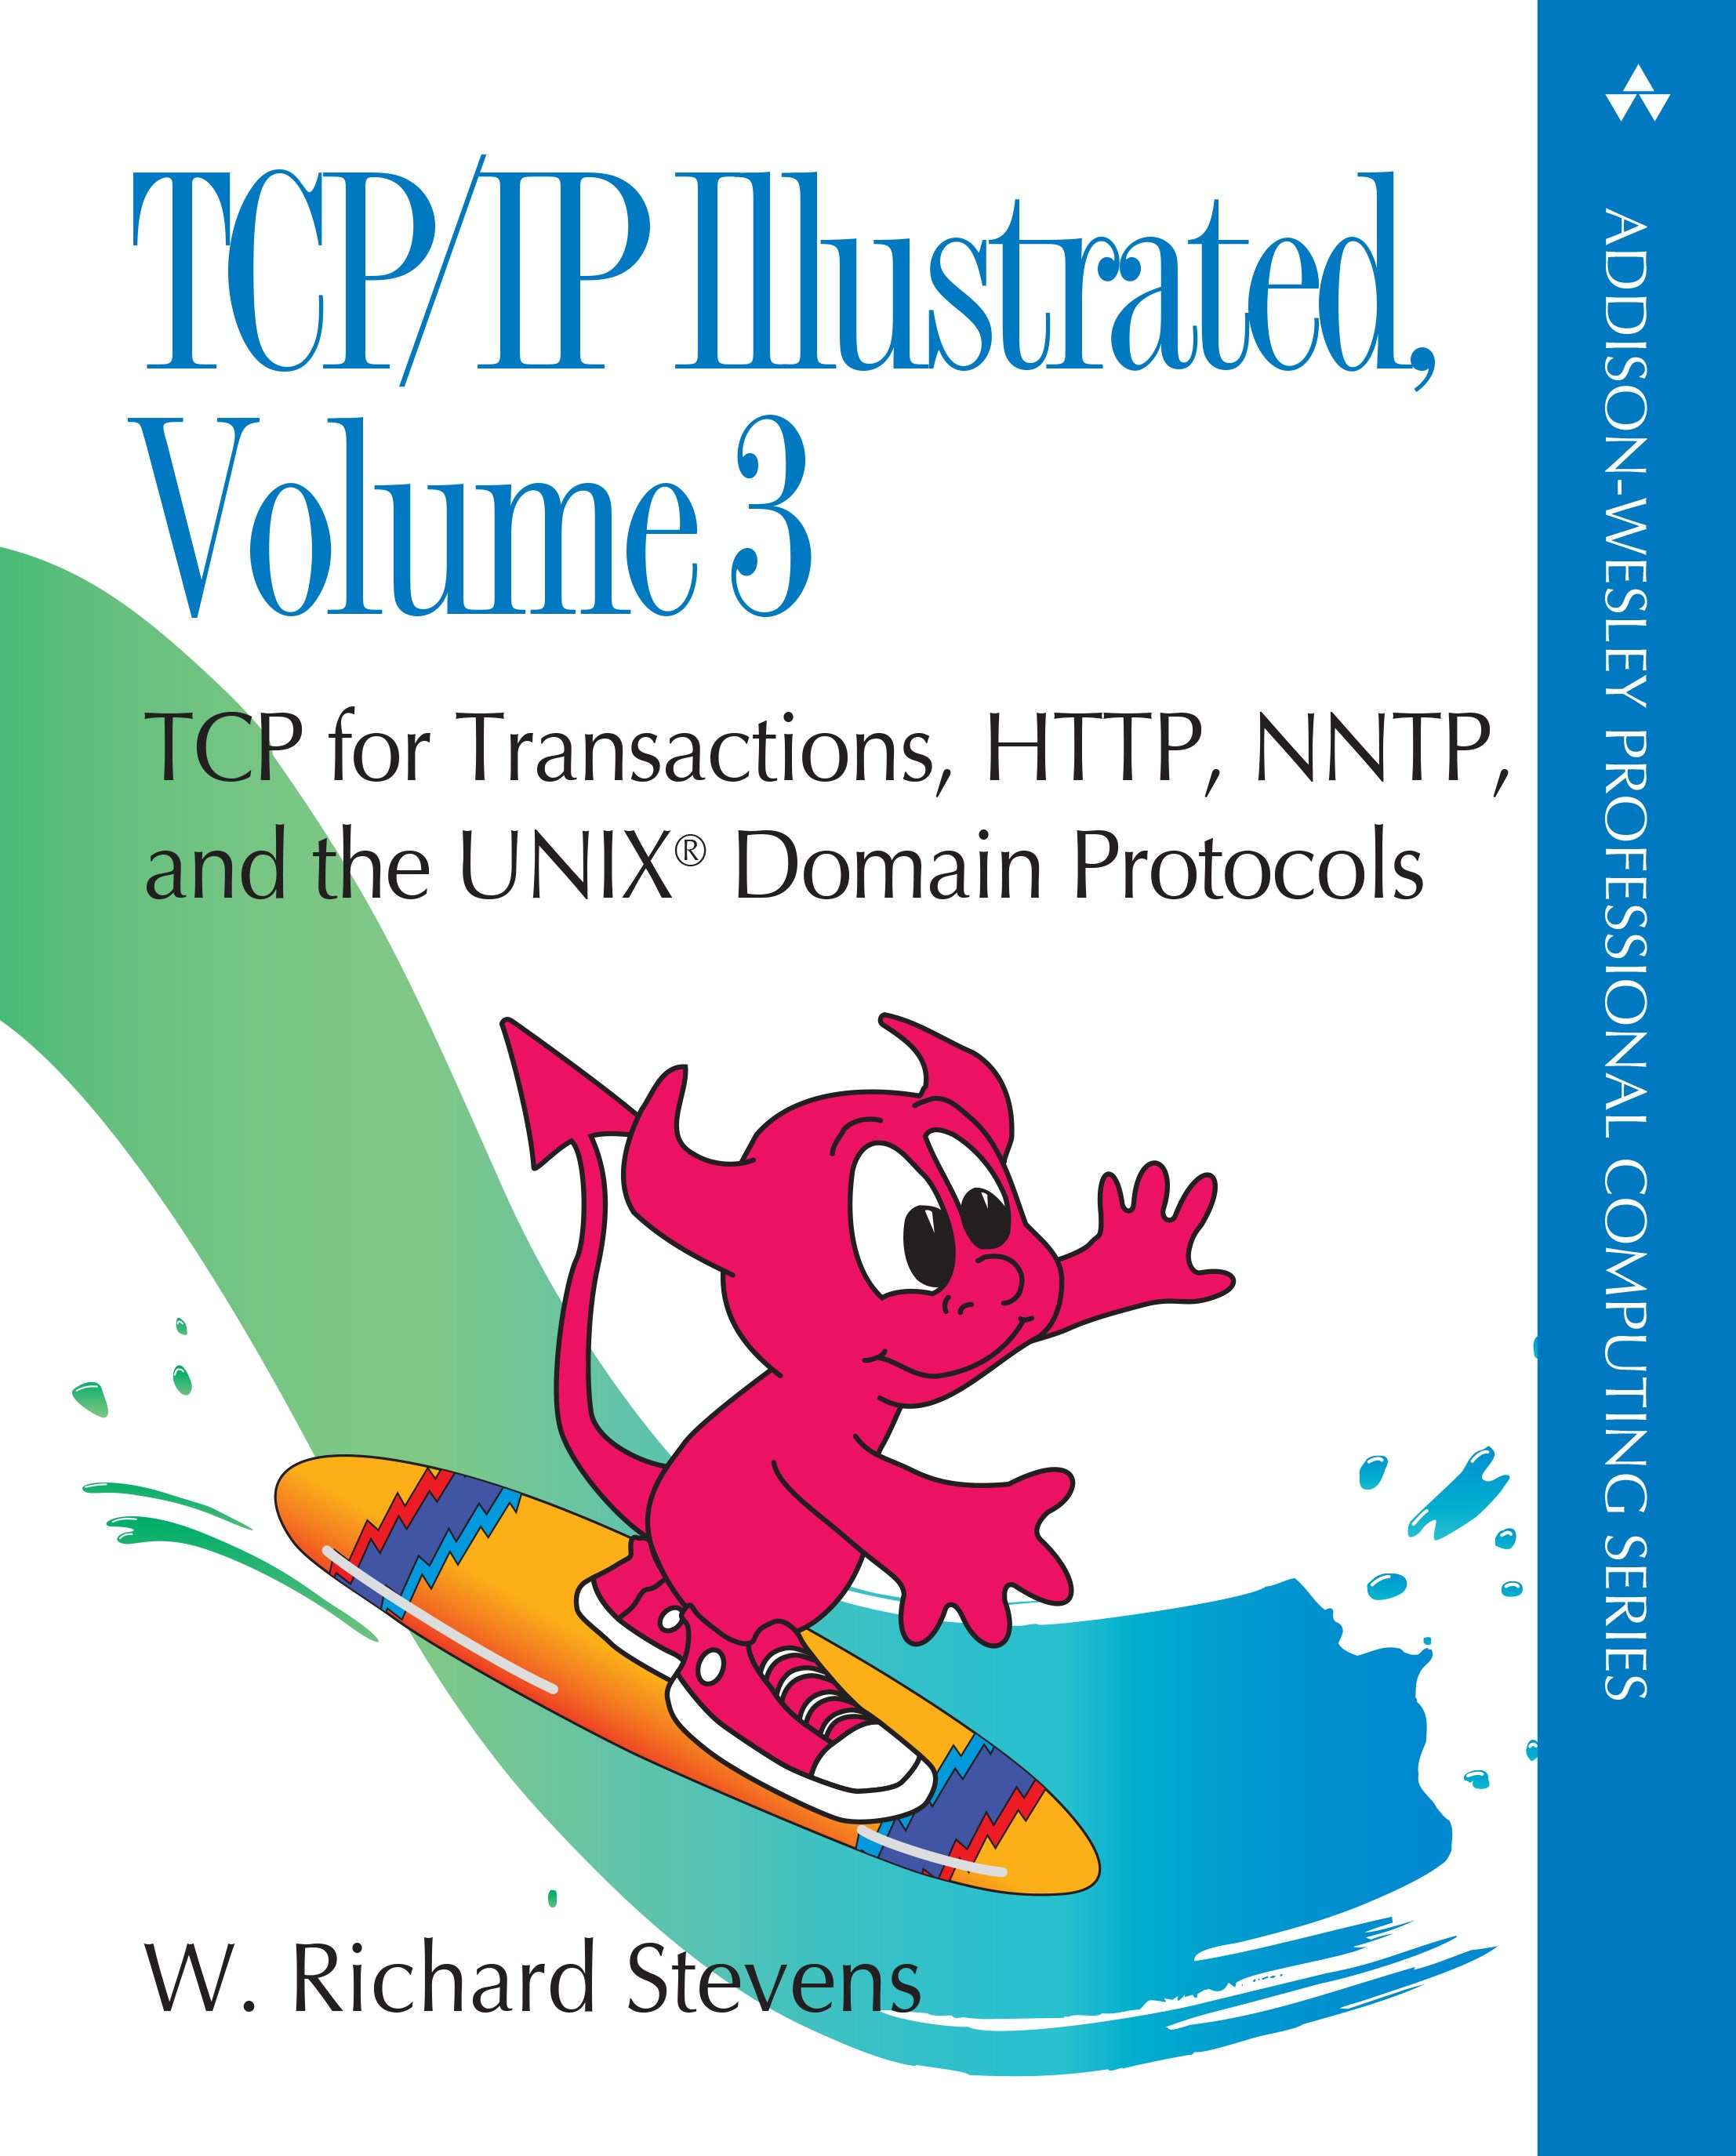 TCP/IP Illustrated, Volume 3: TCP for Transactions, HTTP, NNTP, and the UNIX Domain Protocols (paperback)